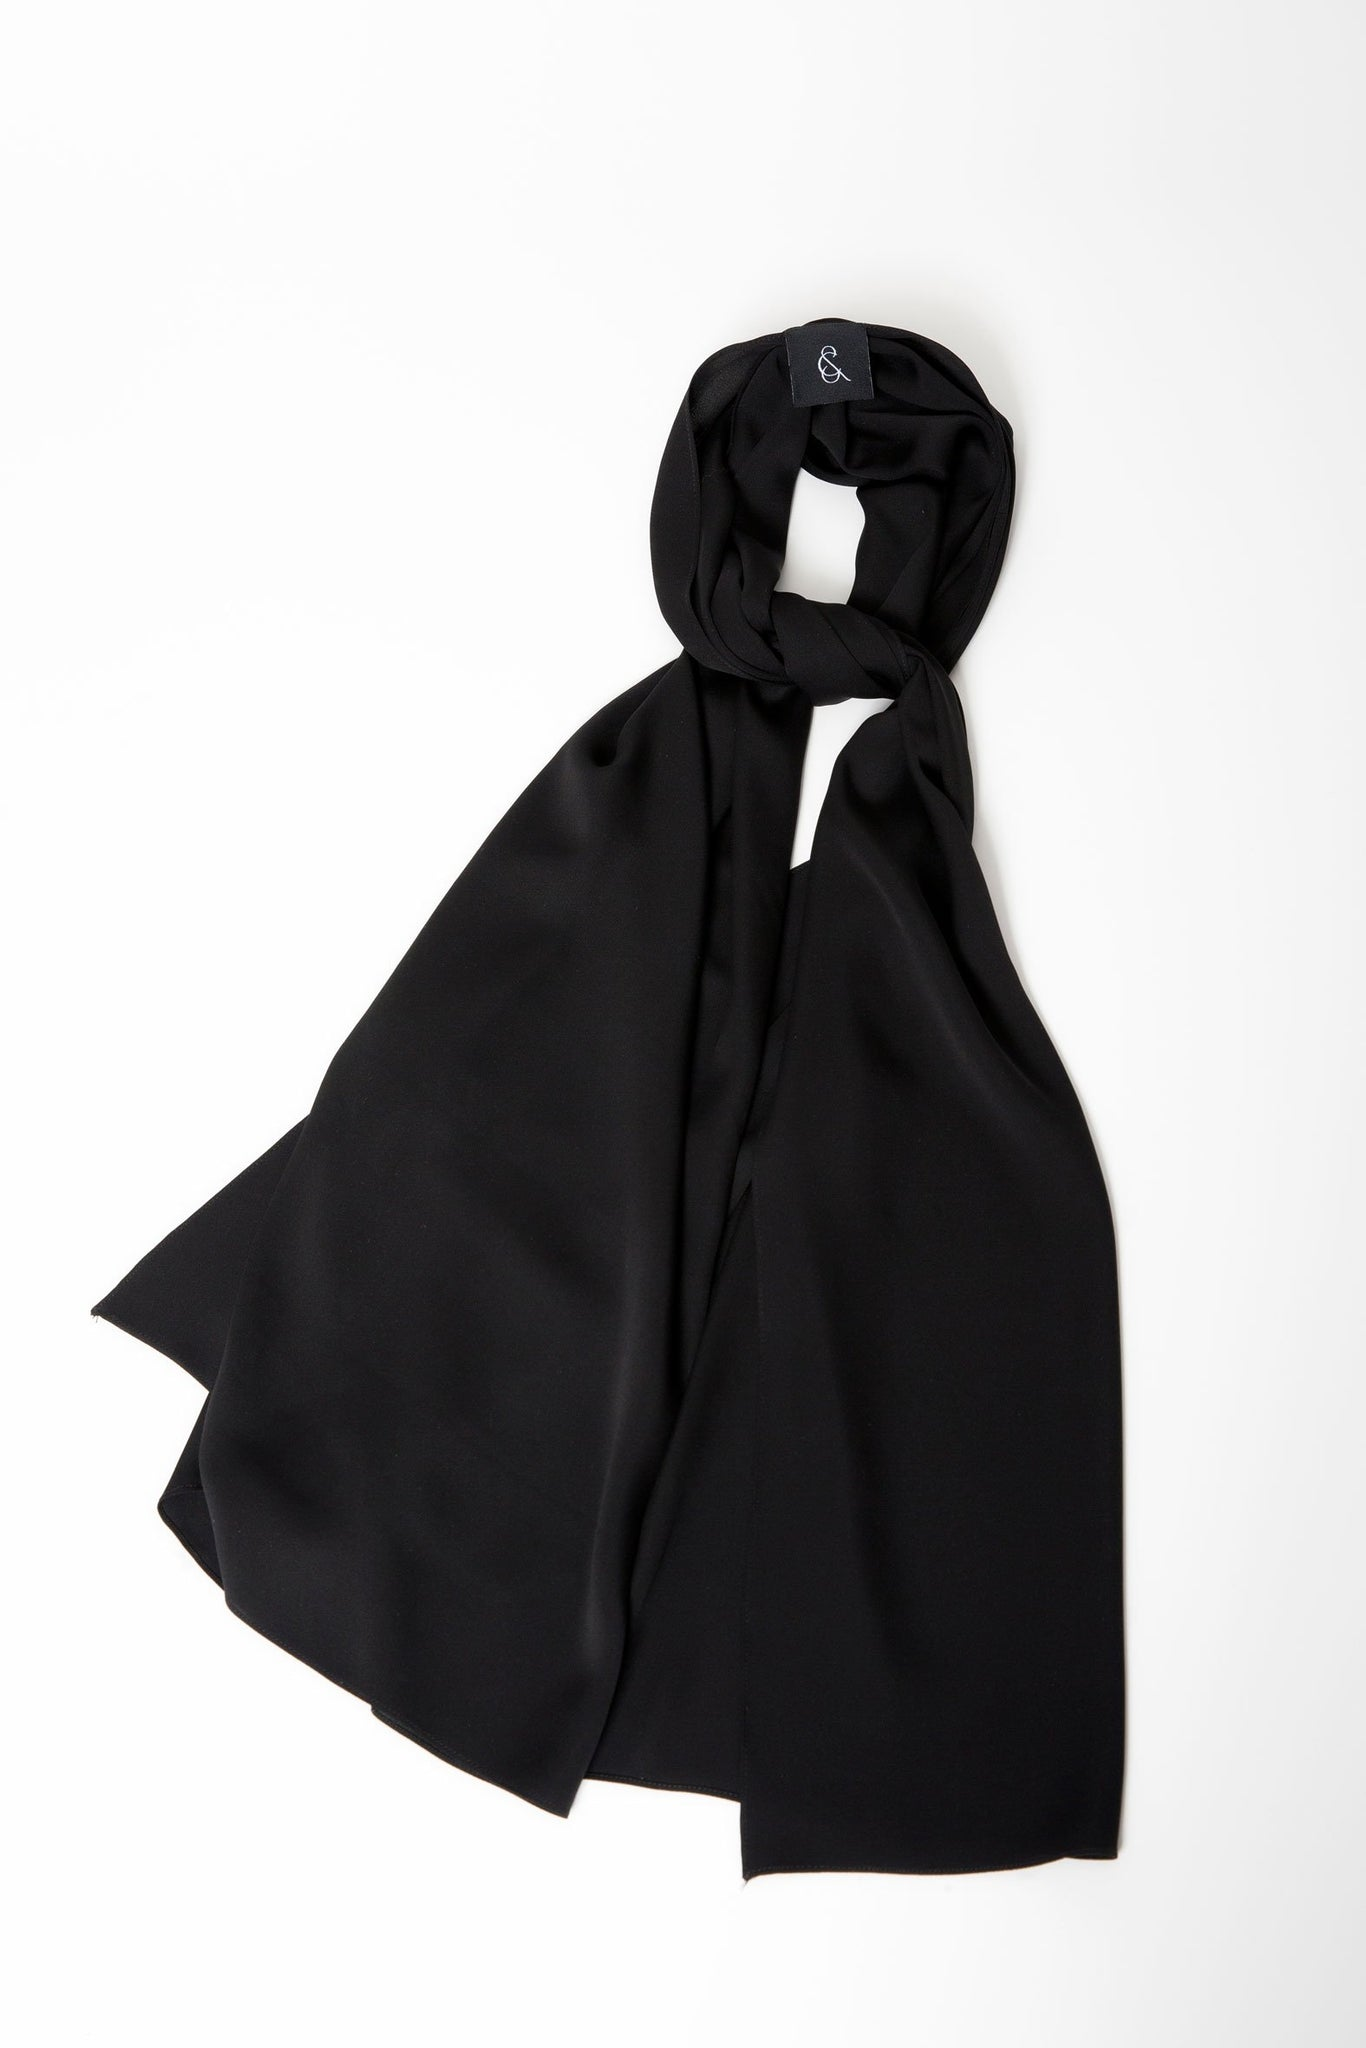 The Wrap / Turban Black